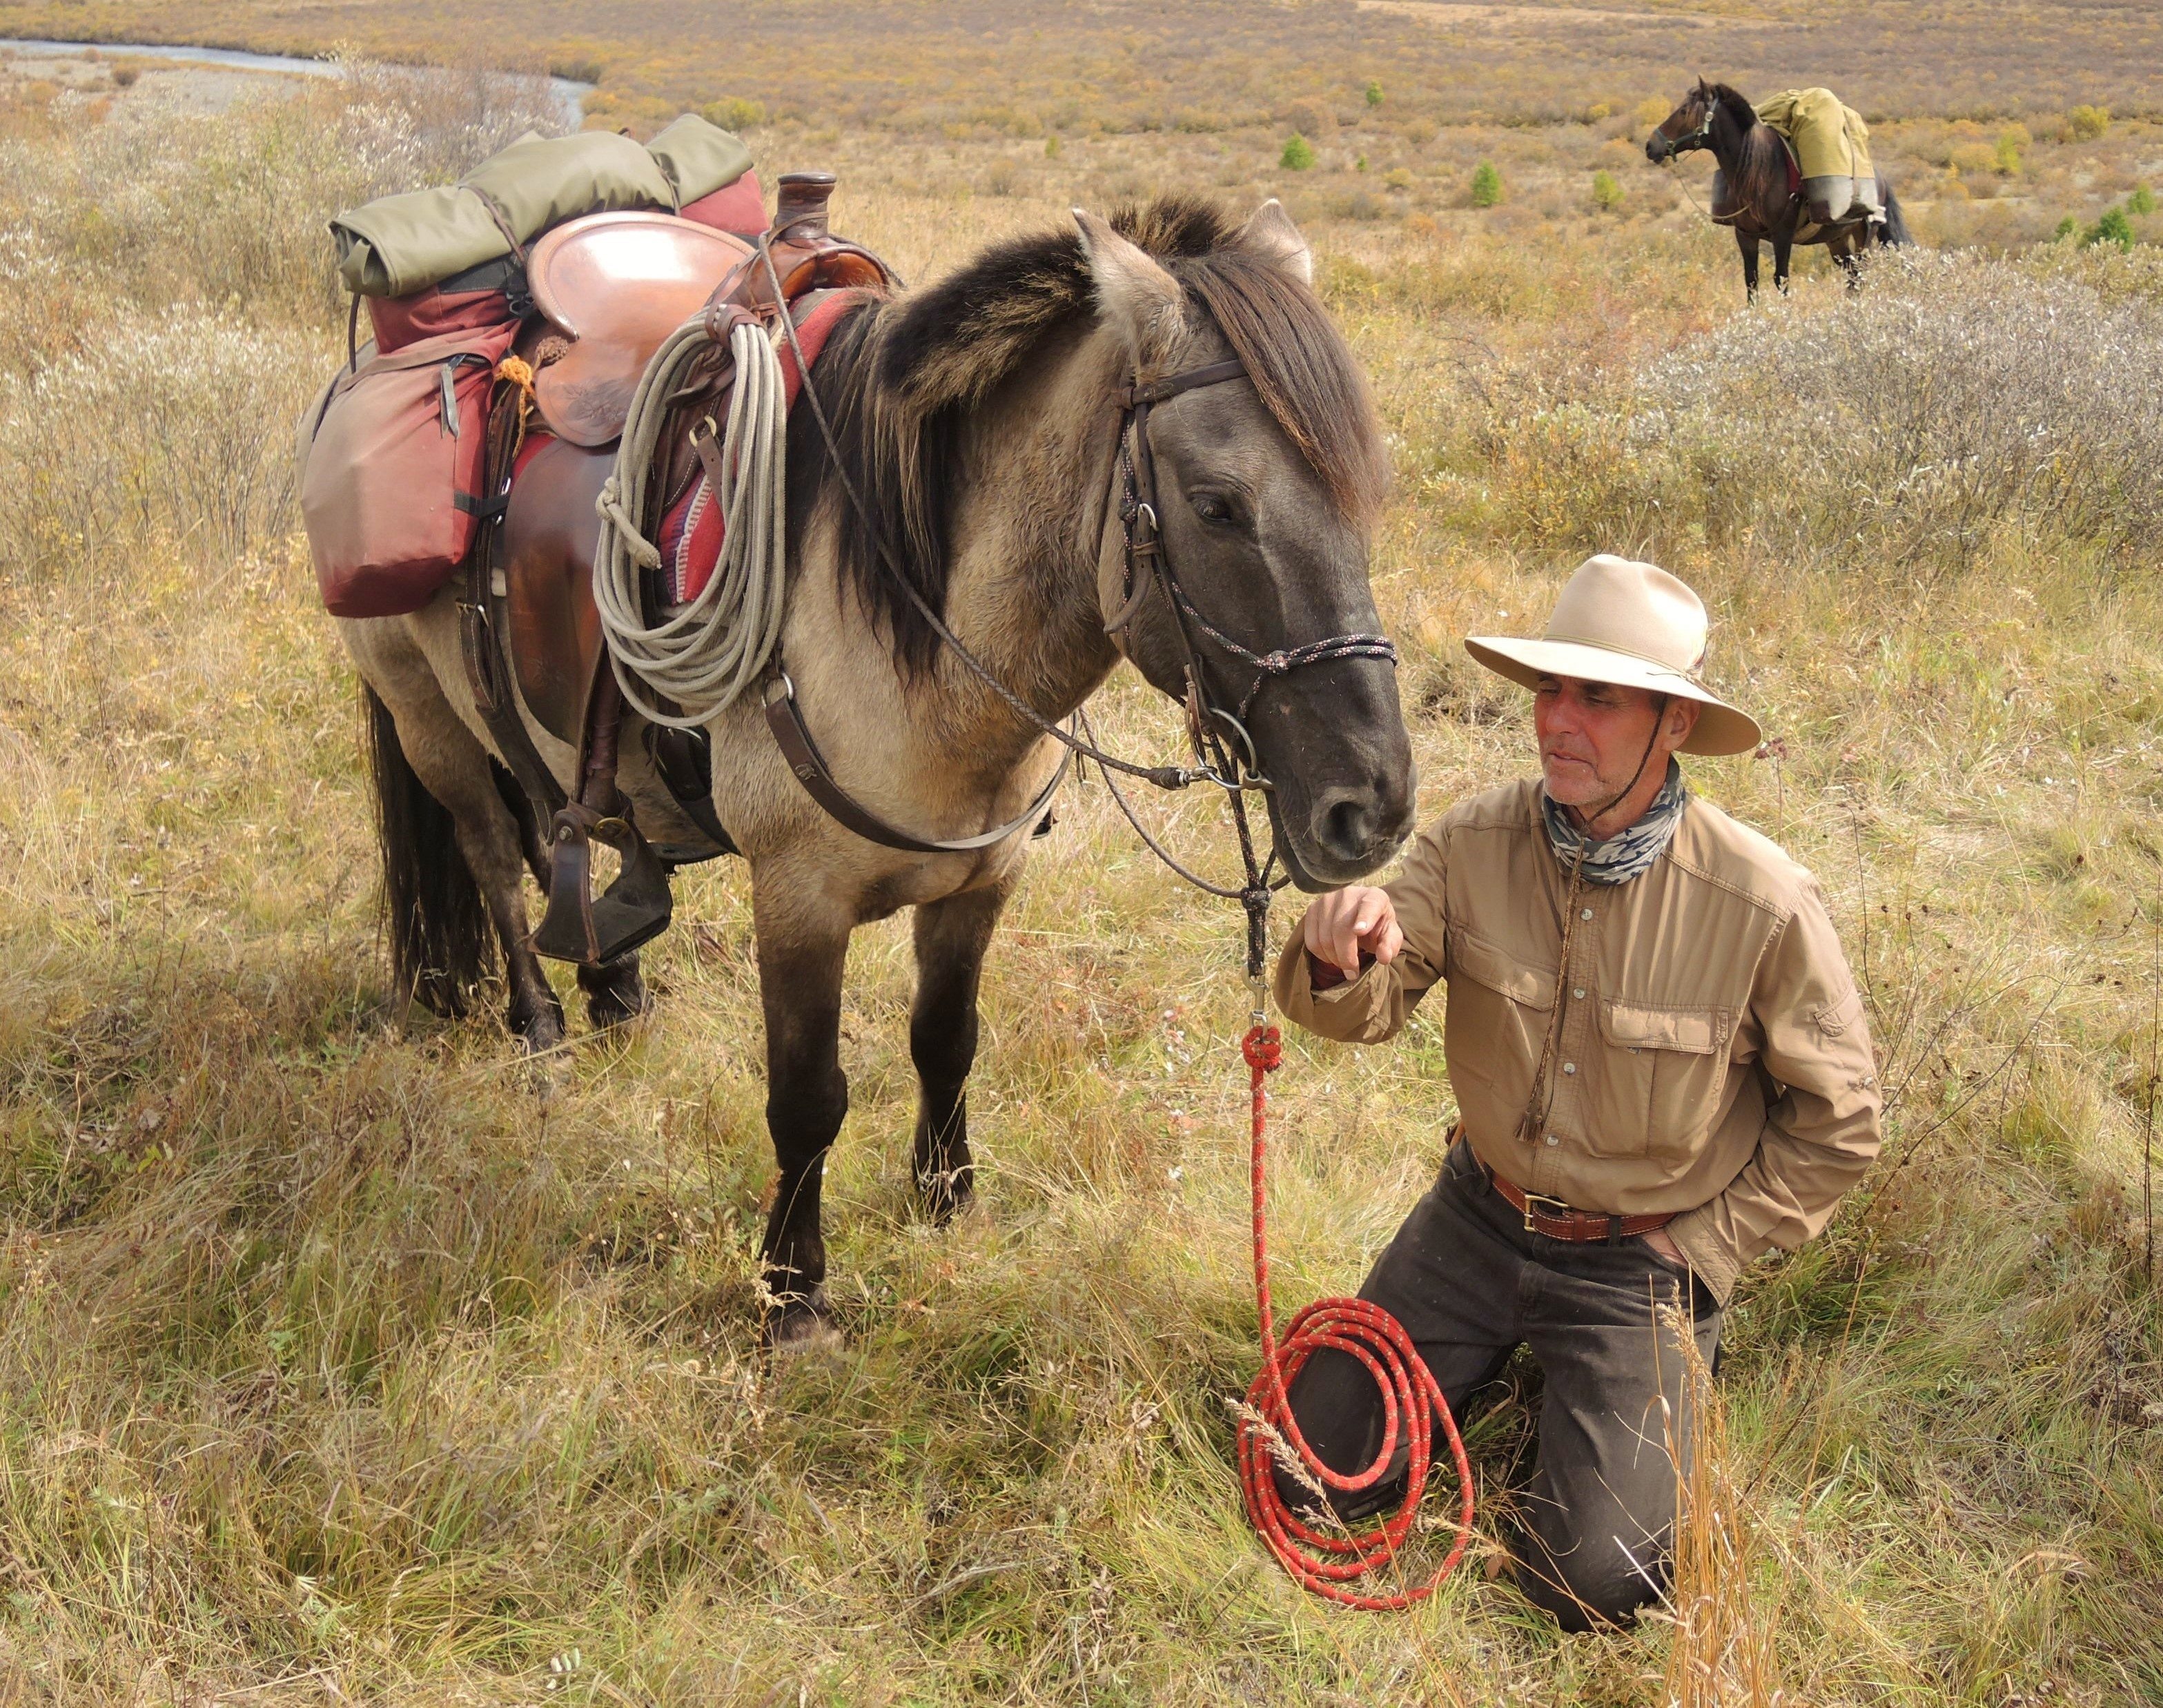 Travel Mongolia on Horseback with Experienced Guides, Keith